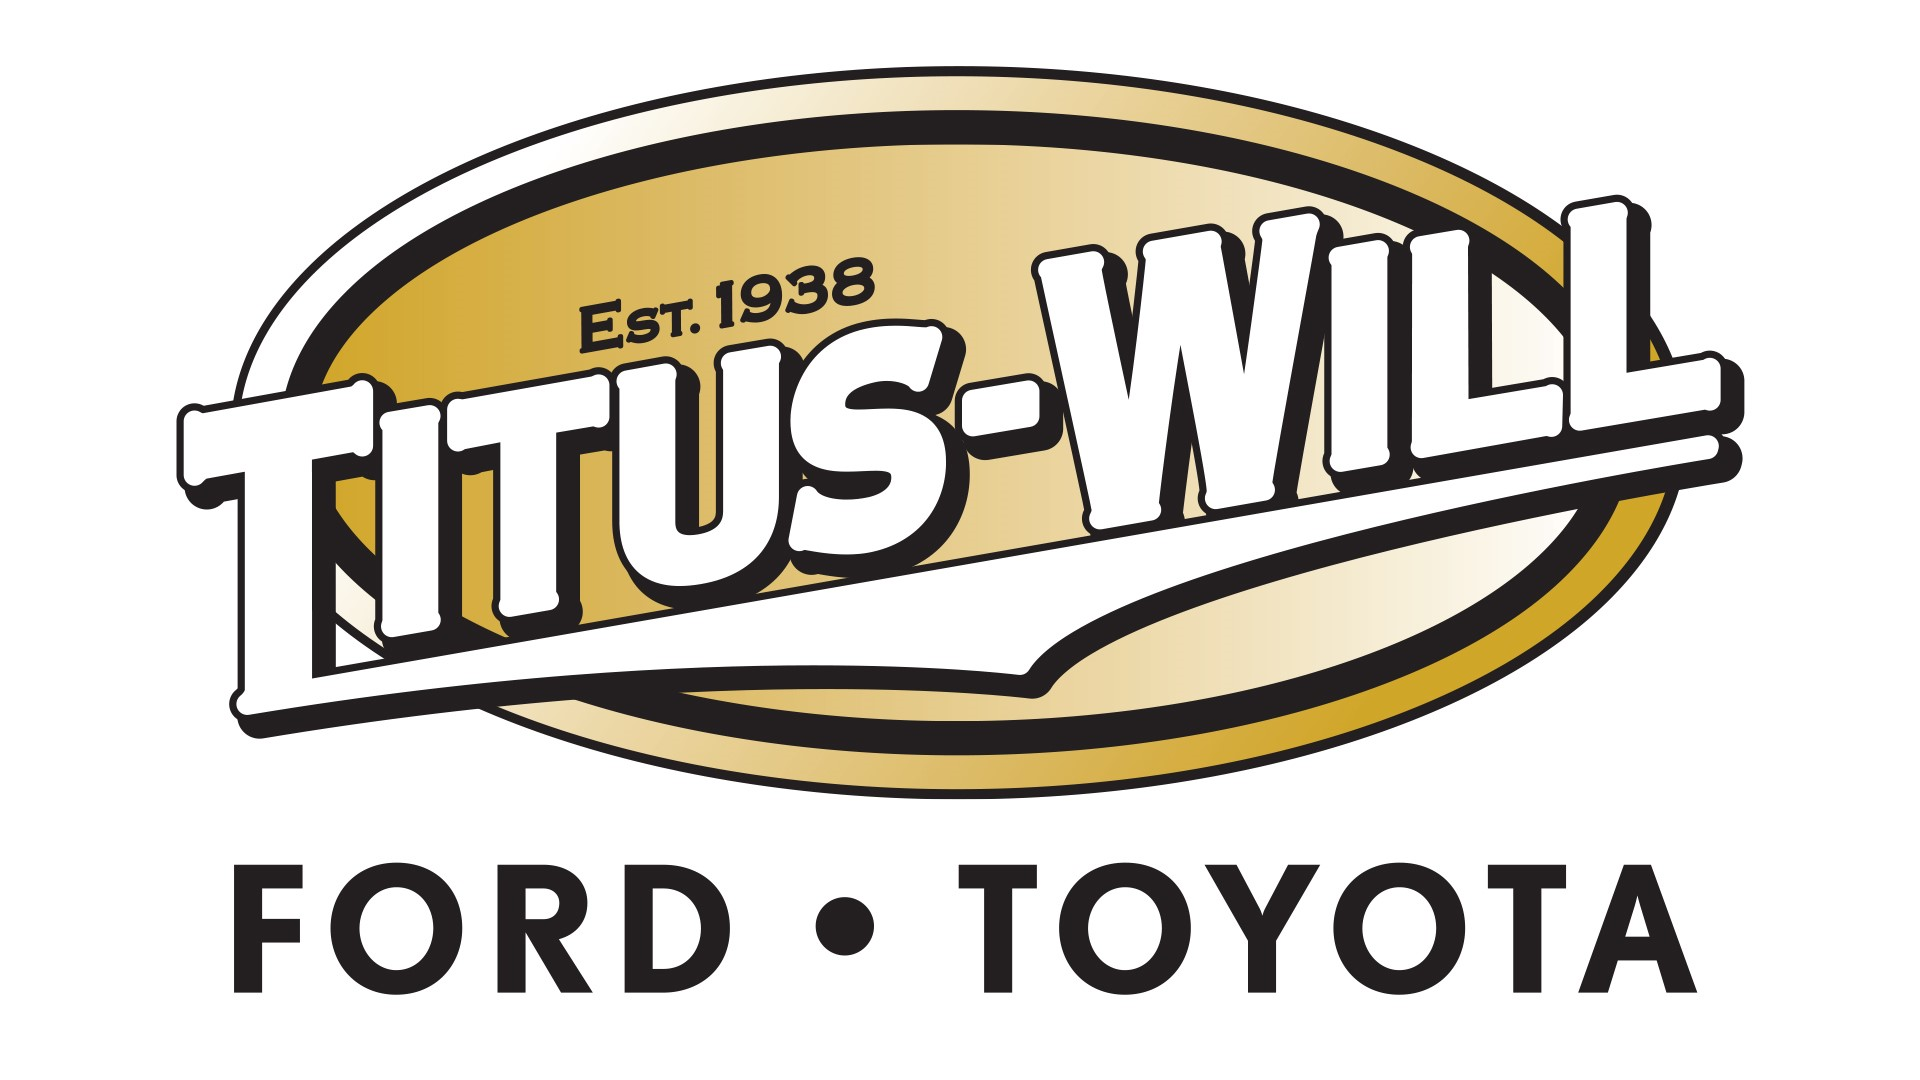 Courage Titus will logo